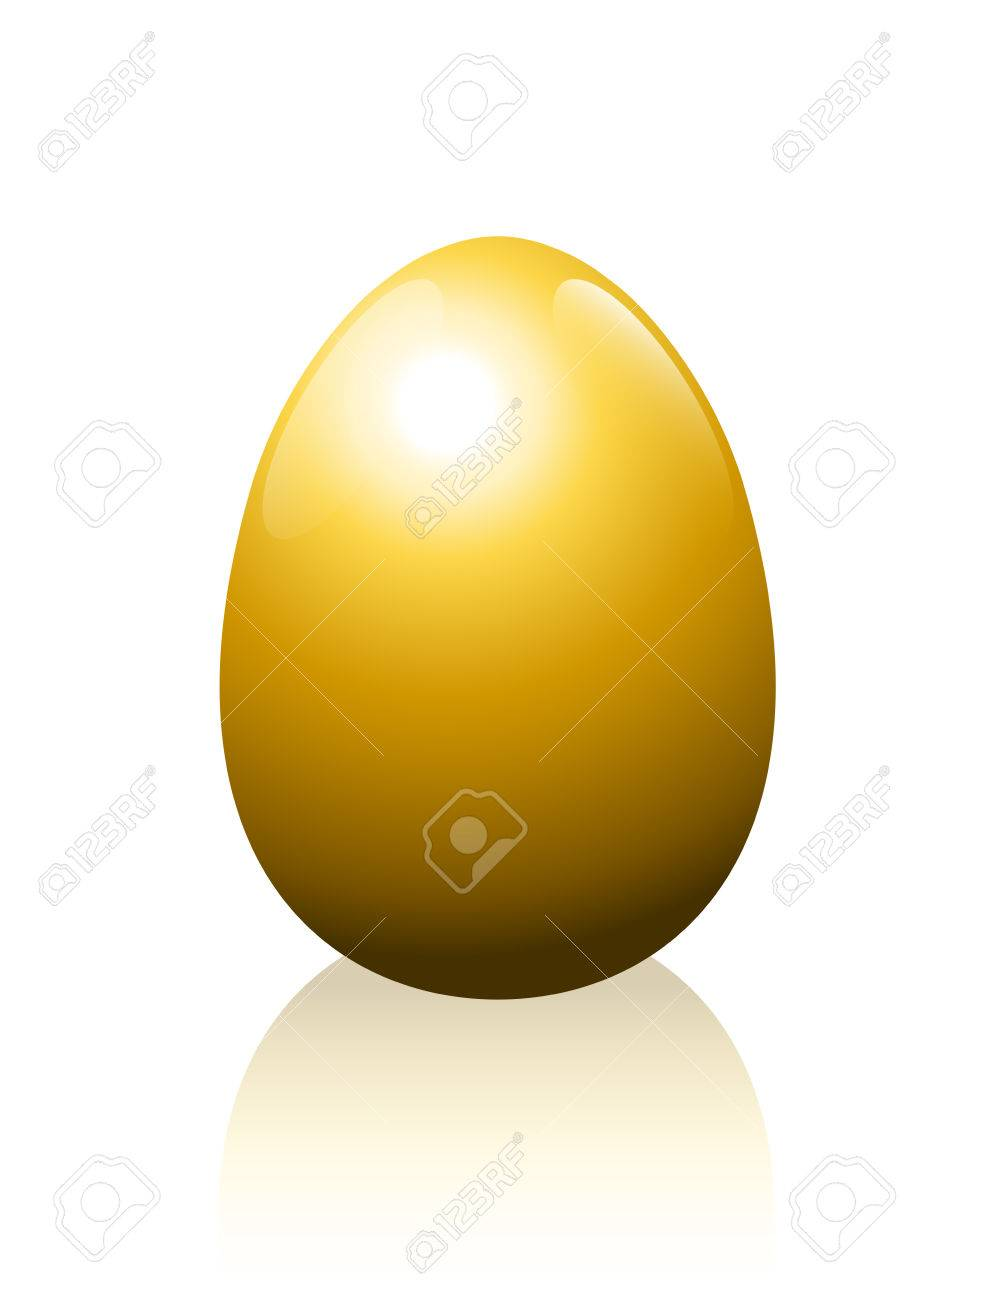 Golden Egg Symbol For Wealth Luxury Success Fortune Or Any